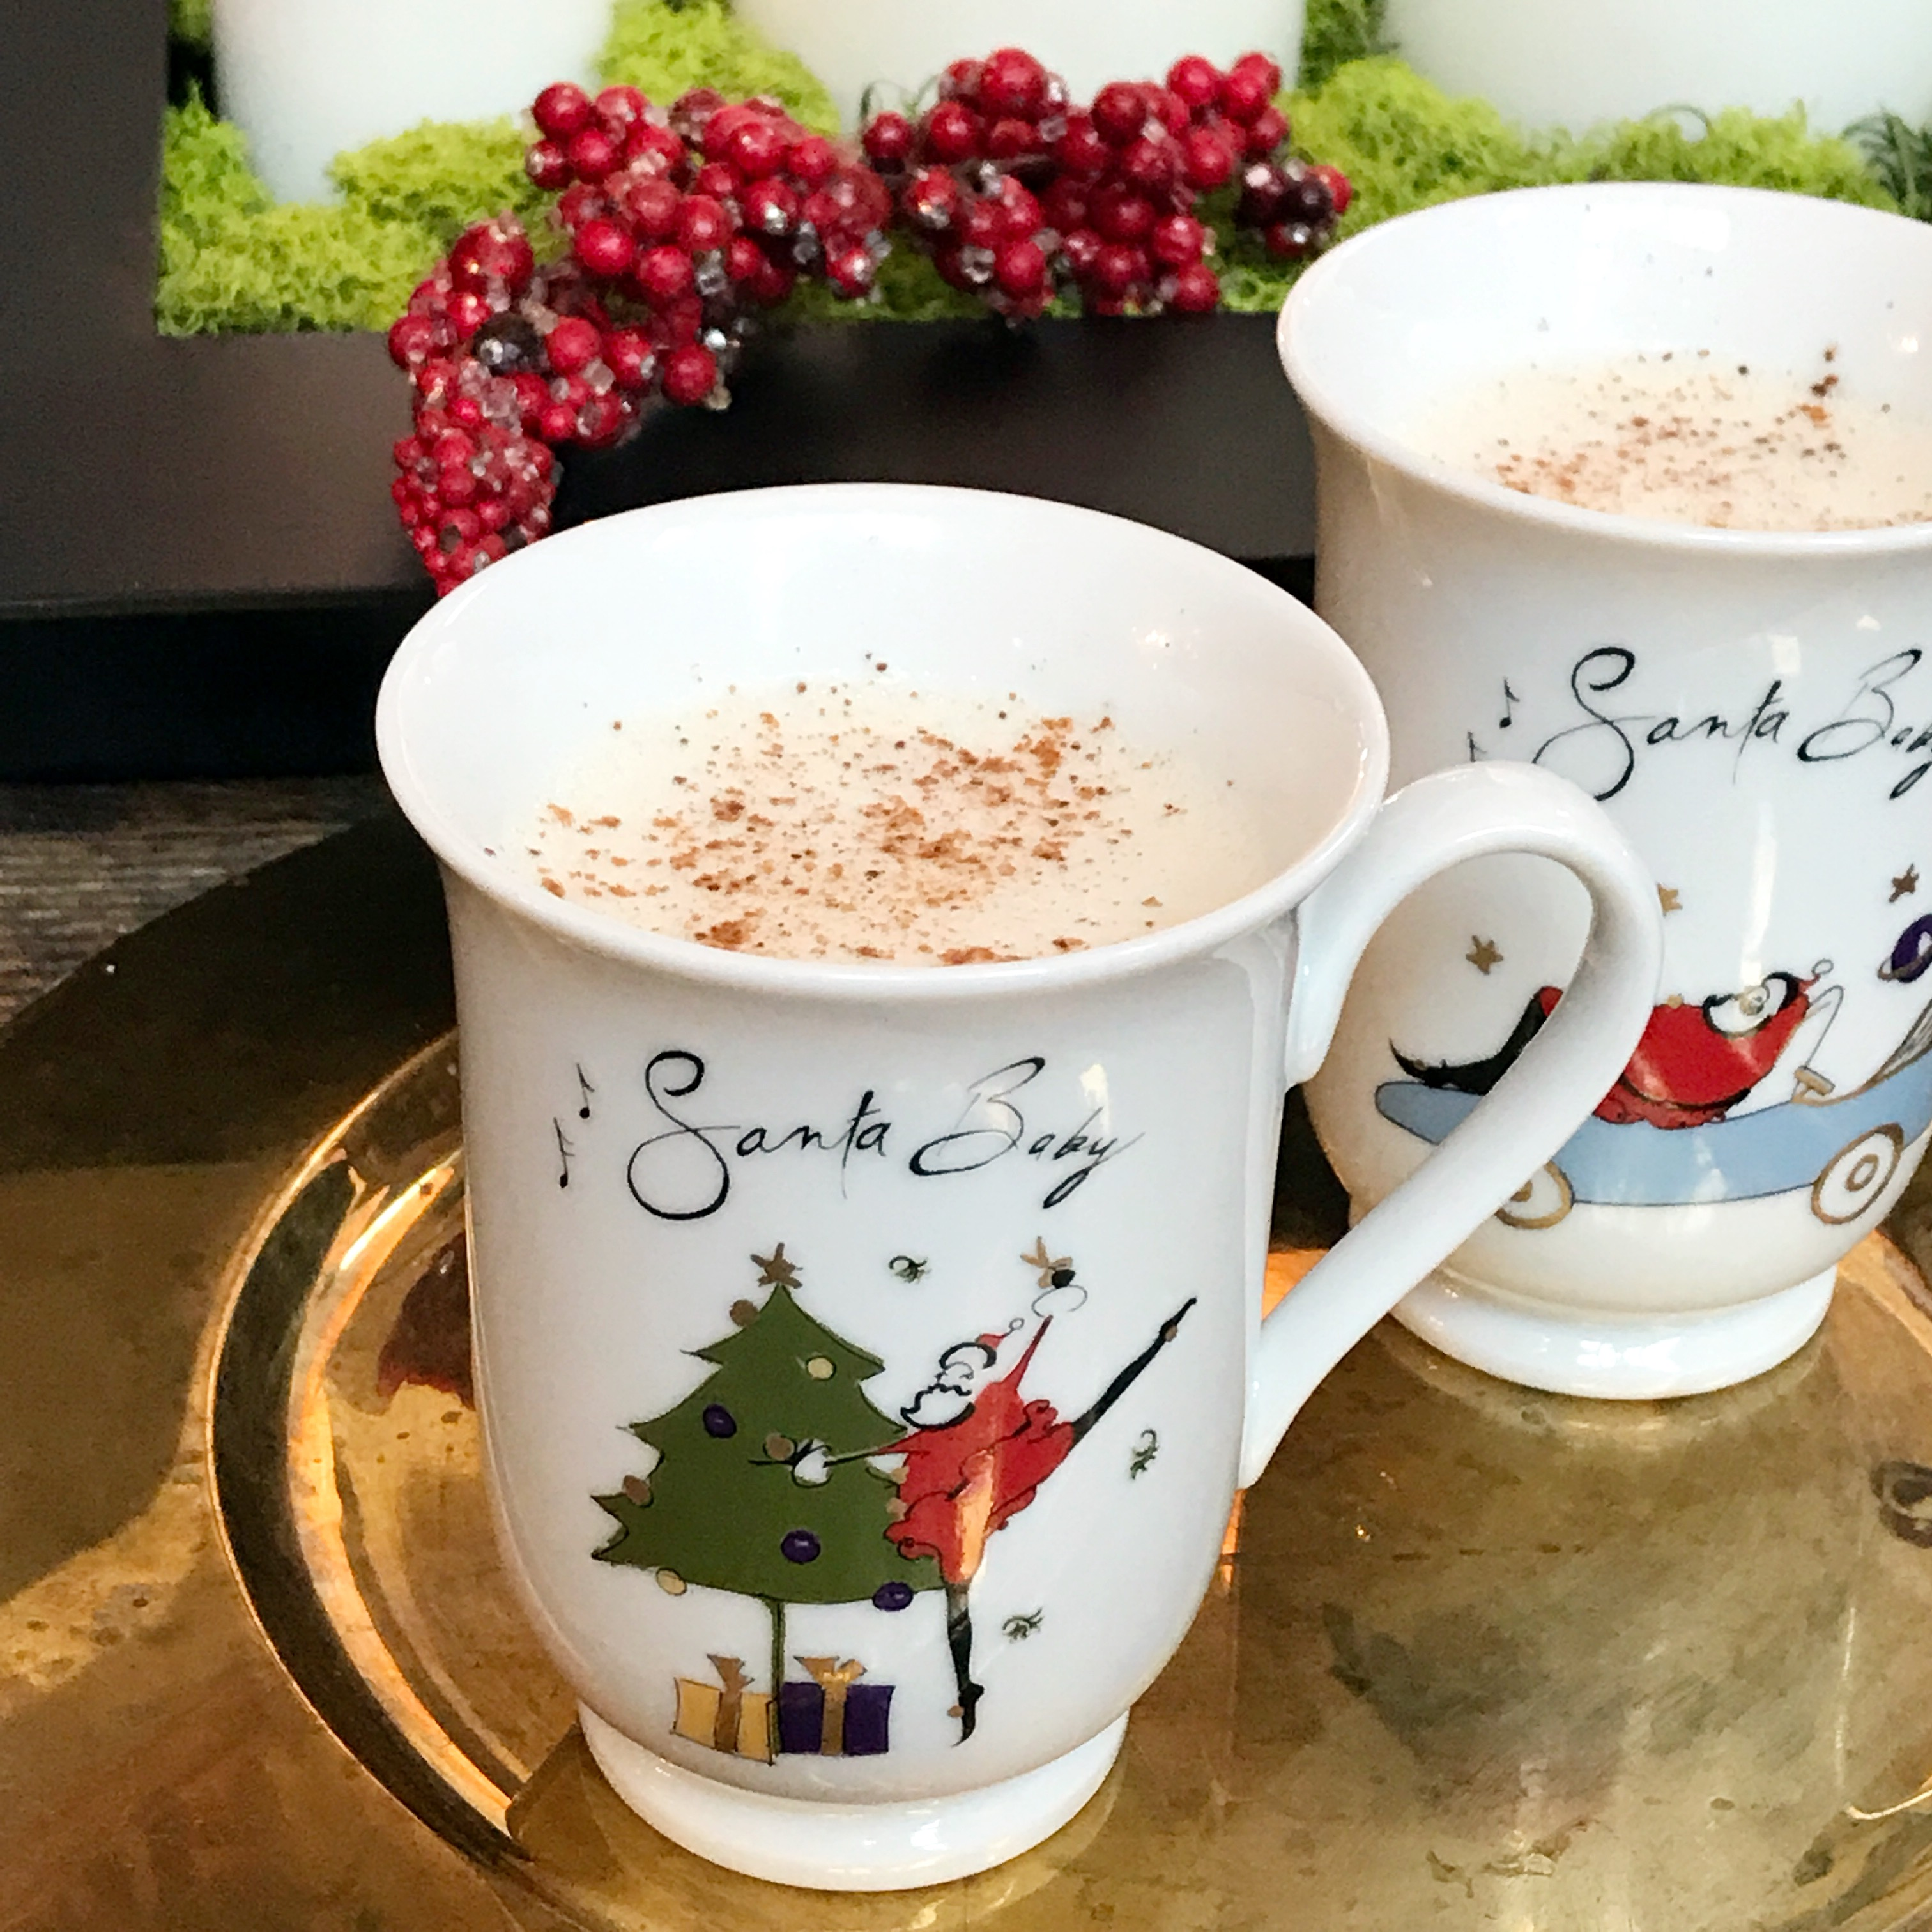 Classic hot buttered rum, one of the best traditional holiday drinks